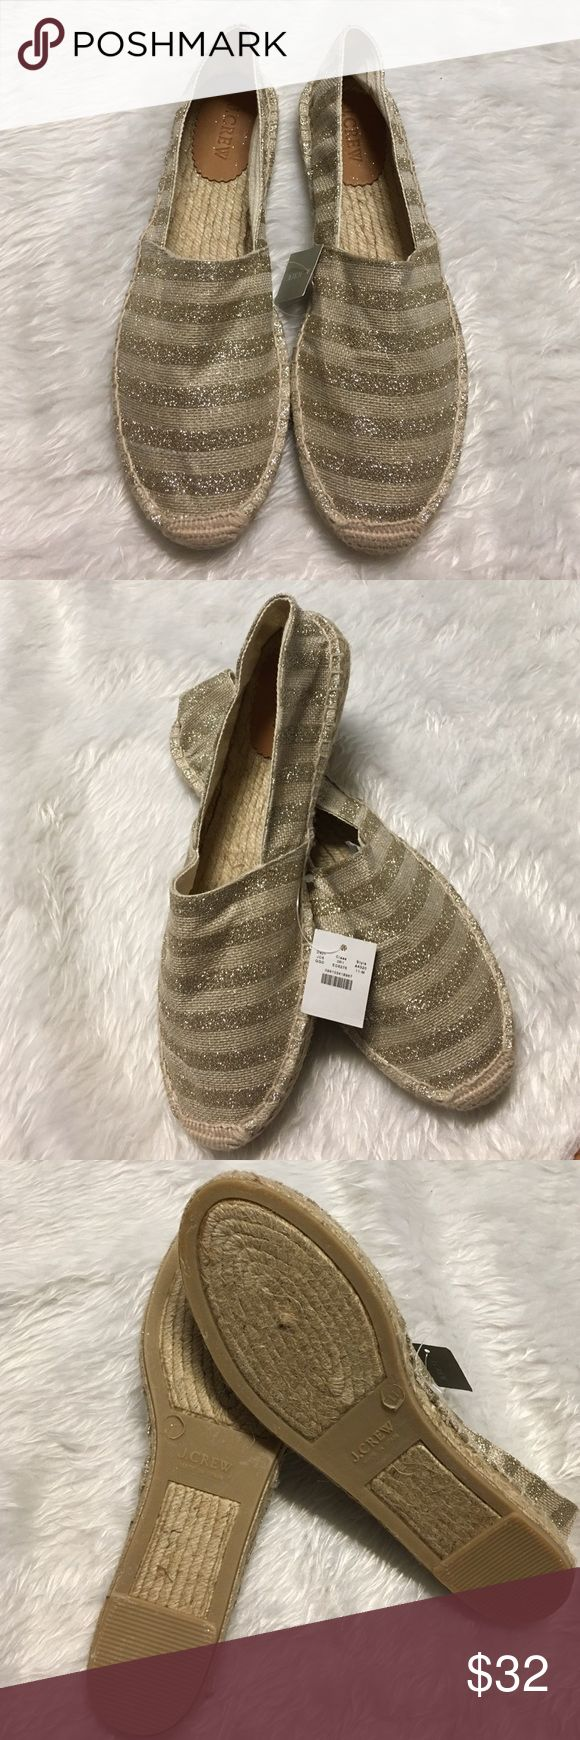 J. Crew glitter stripe espadrilles. NWT. Size 11. Adorable gold glitter striped J Crew espadrilles! Perfect for spring & summer! New with tags. Size 11. J. Crew Shoes Espadrilles